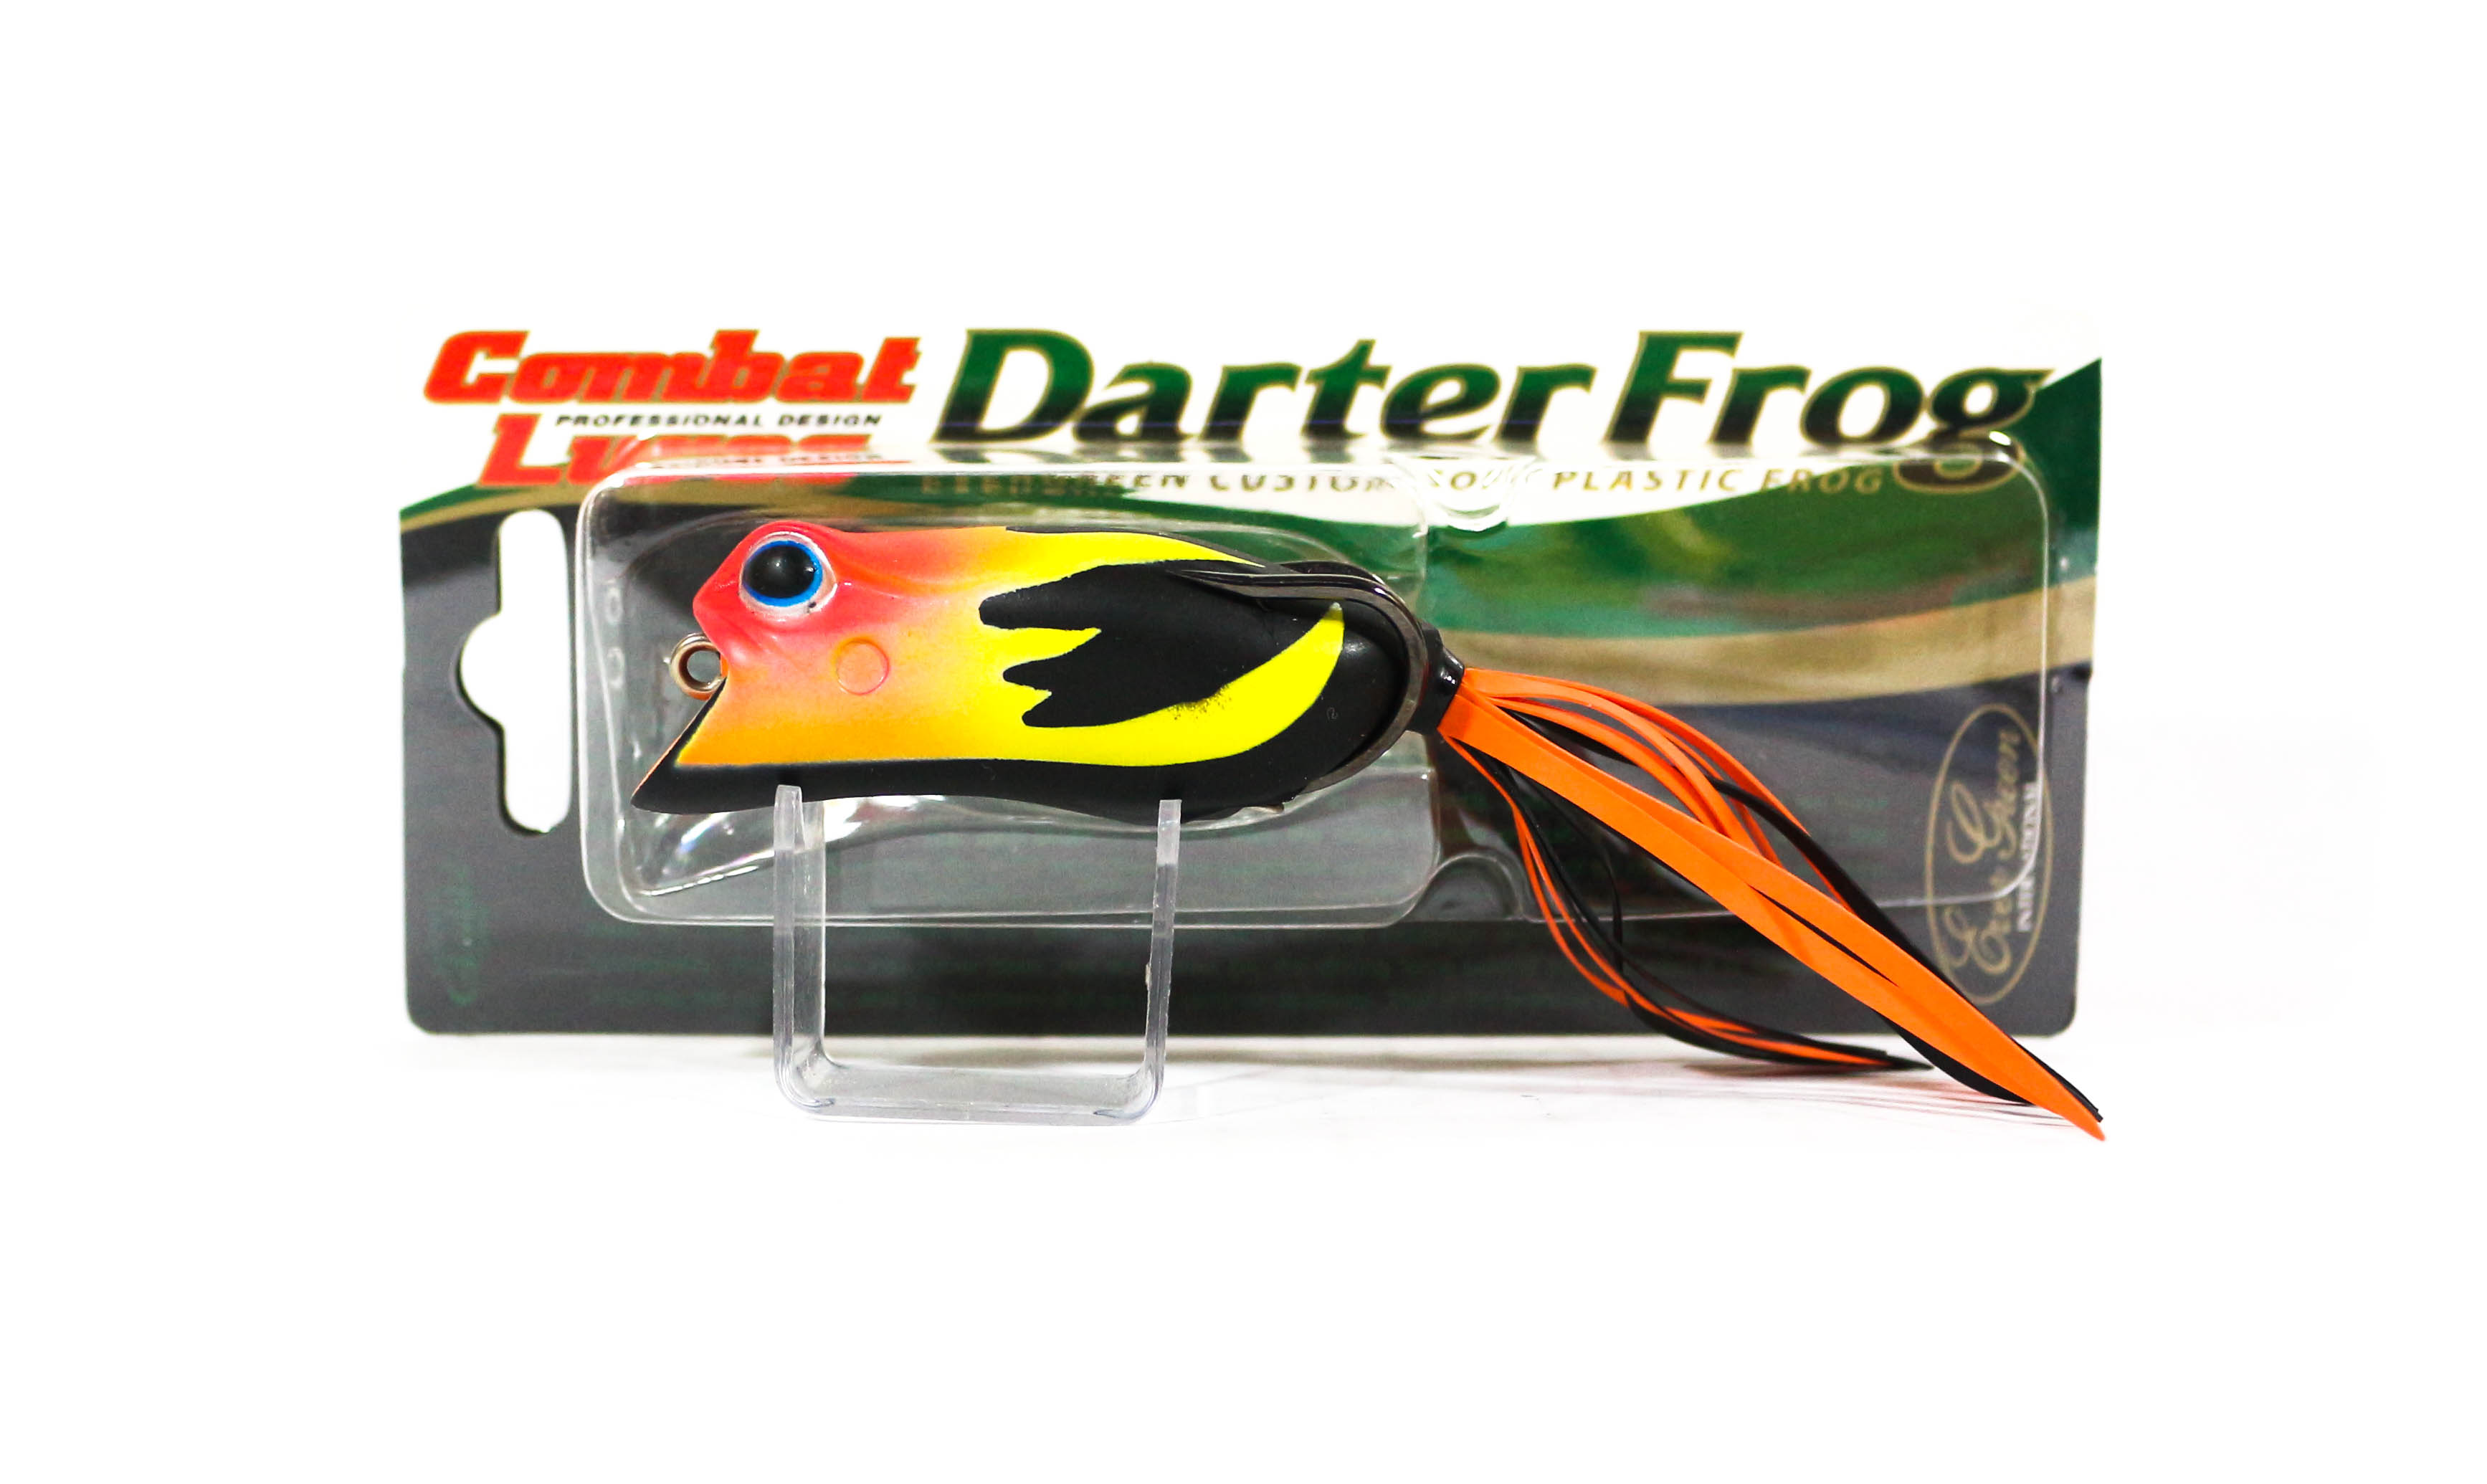 Sale Evergreen Darter Frog Soft Plastic Floating Lure 215 (9835)